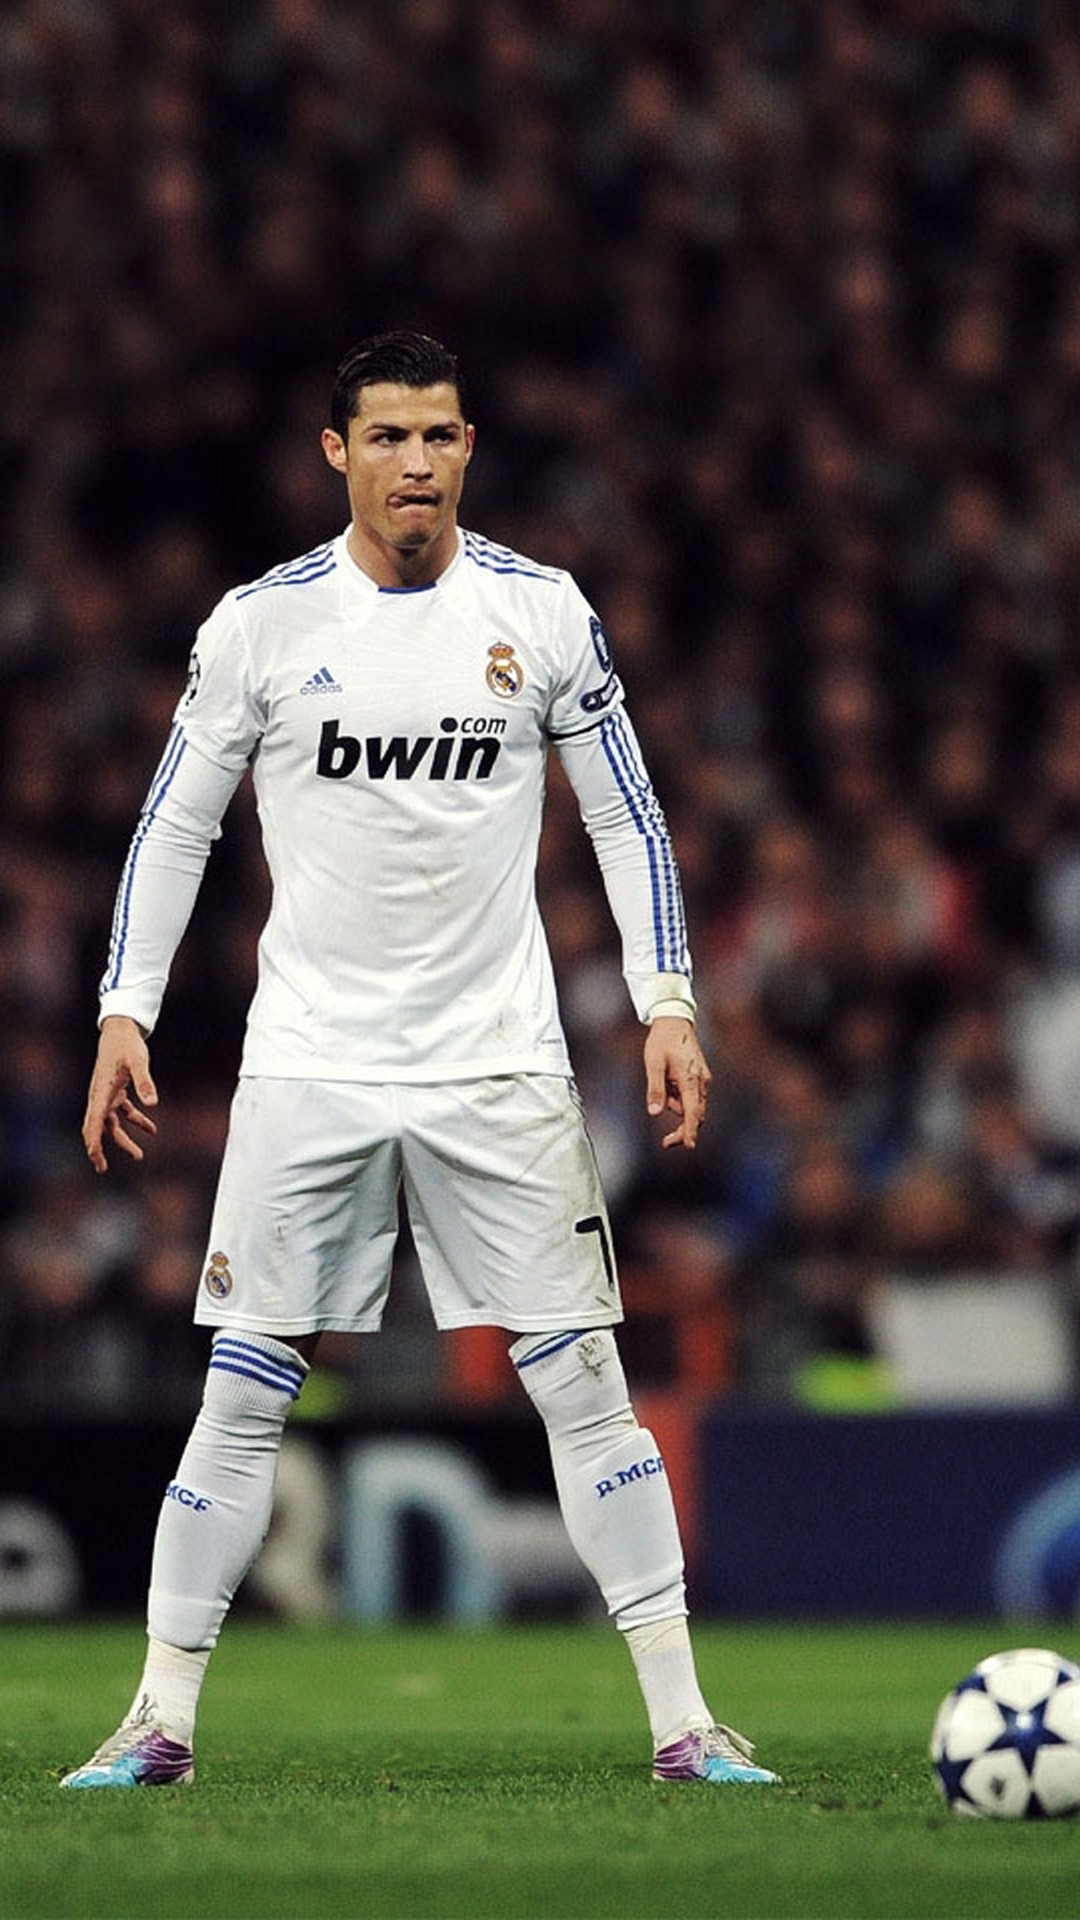 cristiano ronaldo wallpaper for iphone (74+ images)